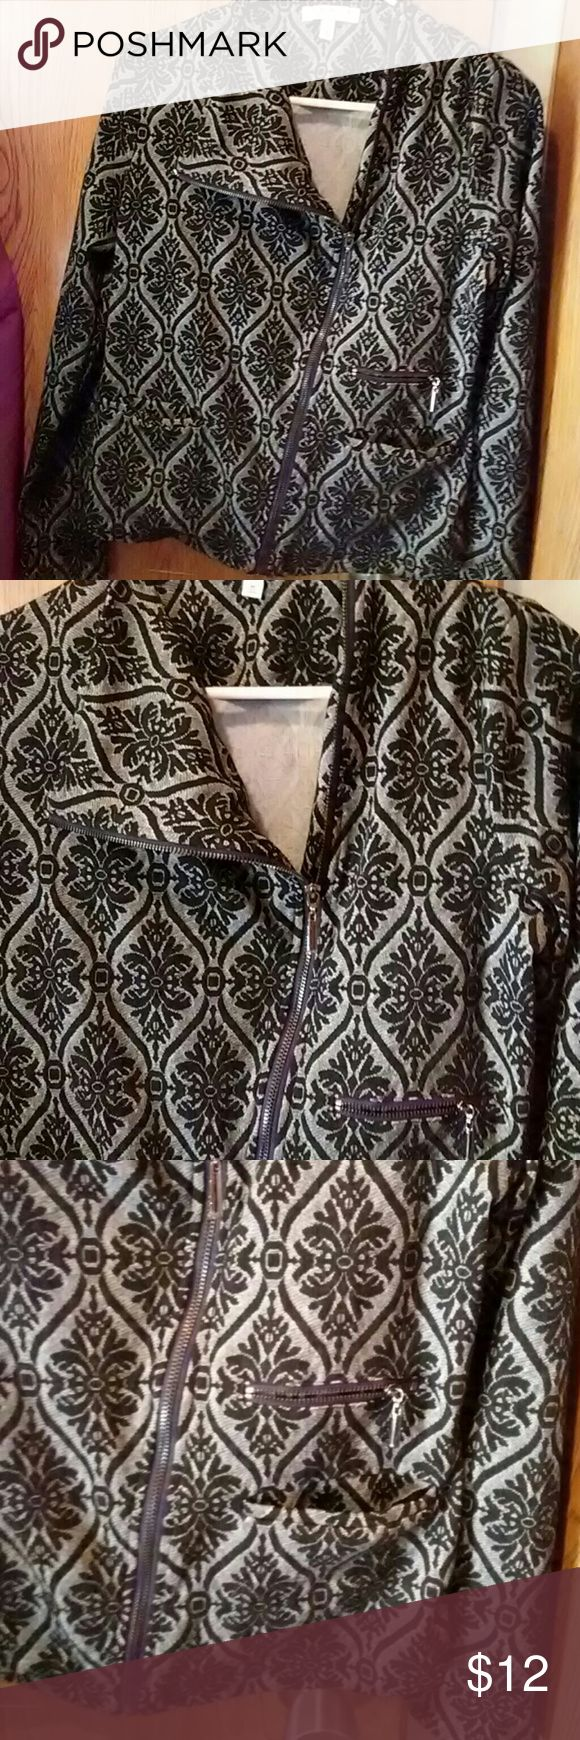 Chaus Zip Jacket   sz M Elegant yet funky zipper jacket.    Black and grey.with Art Deco pattern. 2 small pockets on the front. Chaus , size M.  Poly/Rayon/Spandex Armpit to Armpit- 19.5 inches  Sleeve- 22.5 inches  Length- 22 inches  Smoker and pets in the home. Please do not purchase if this is an issue for you. Questions and offers are welcome.  Thanks. Chaus Jackets & Coats Blazers